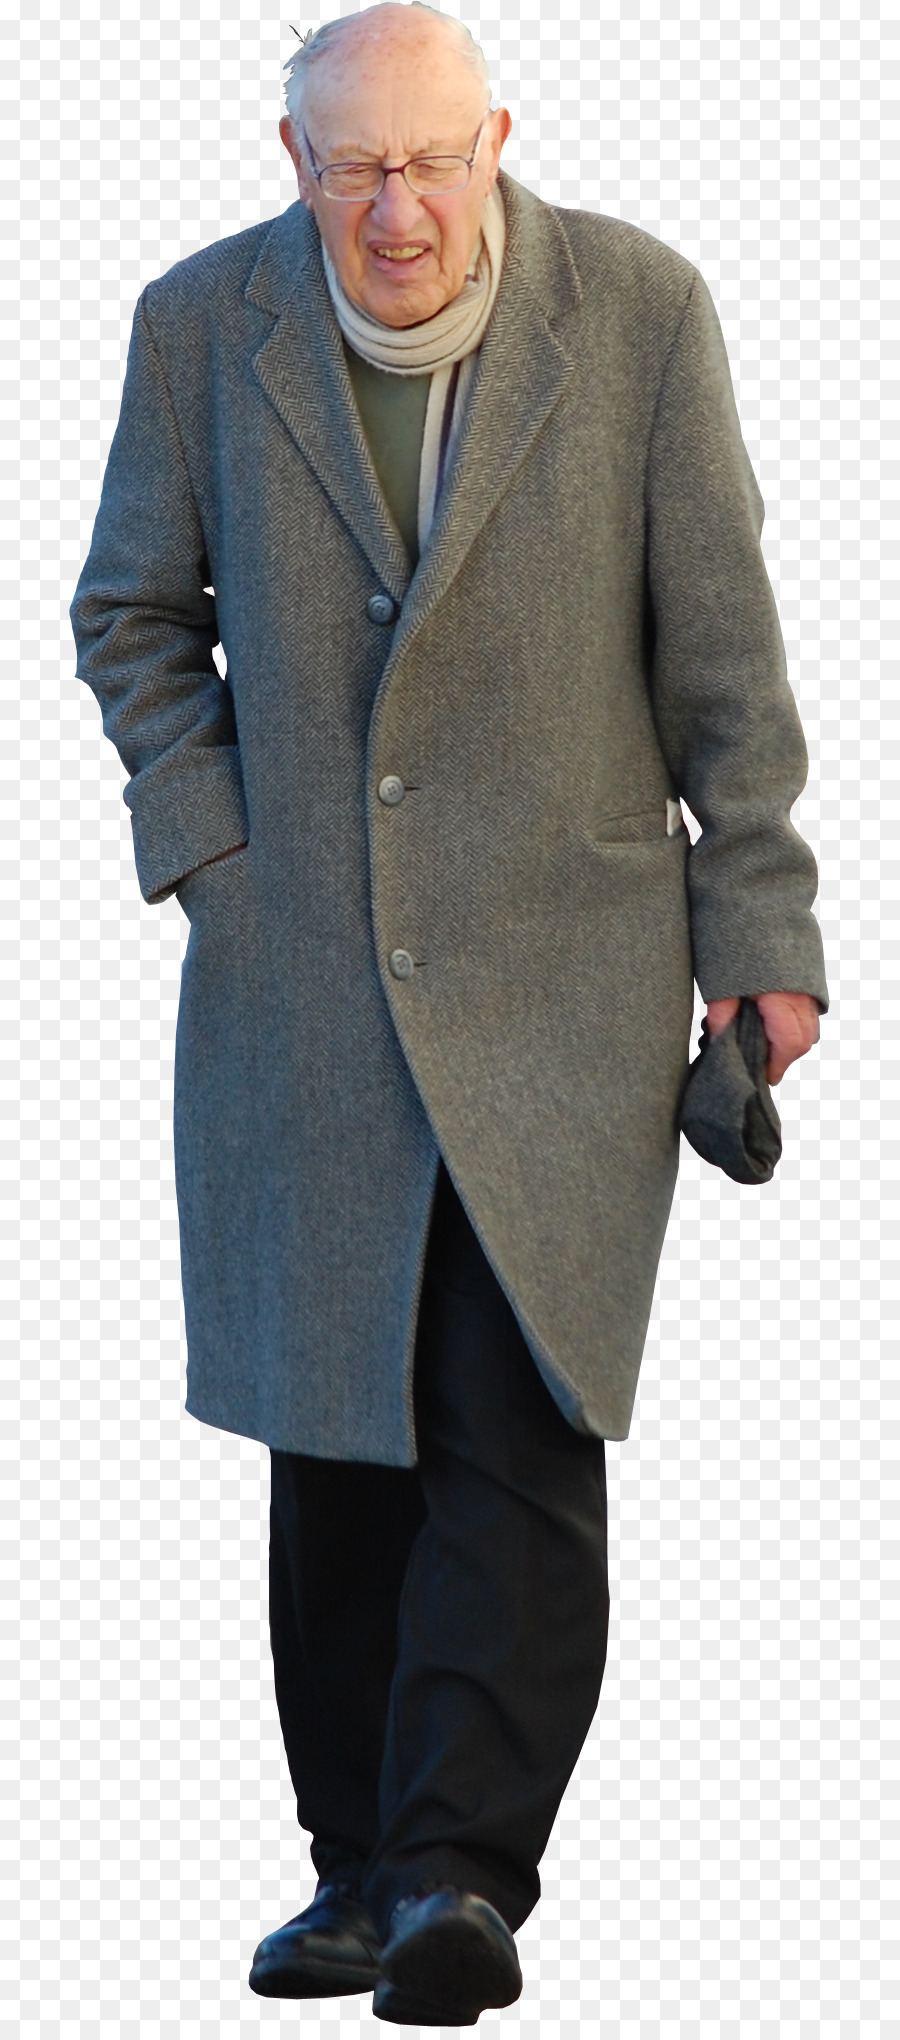 Old Man Standing PNG - 164800